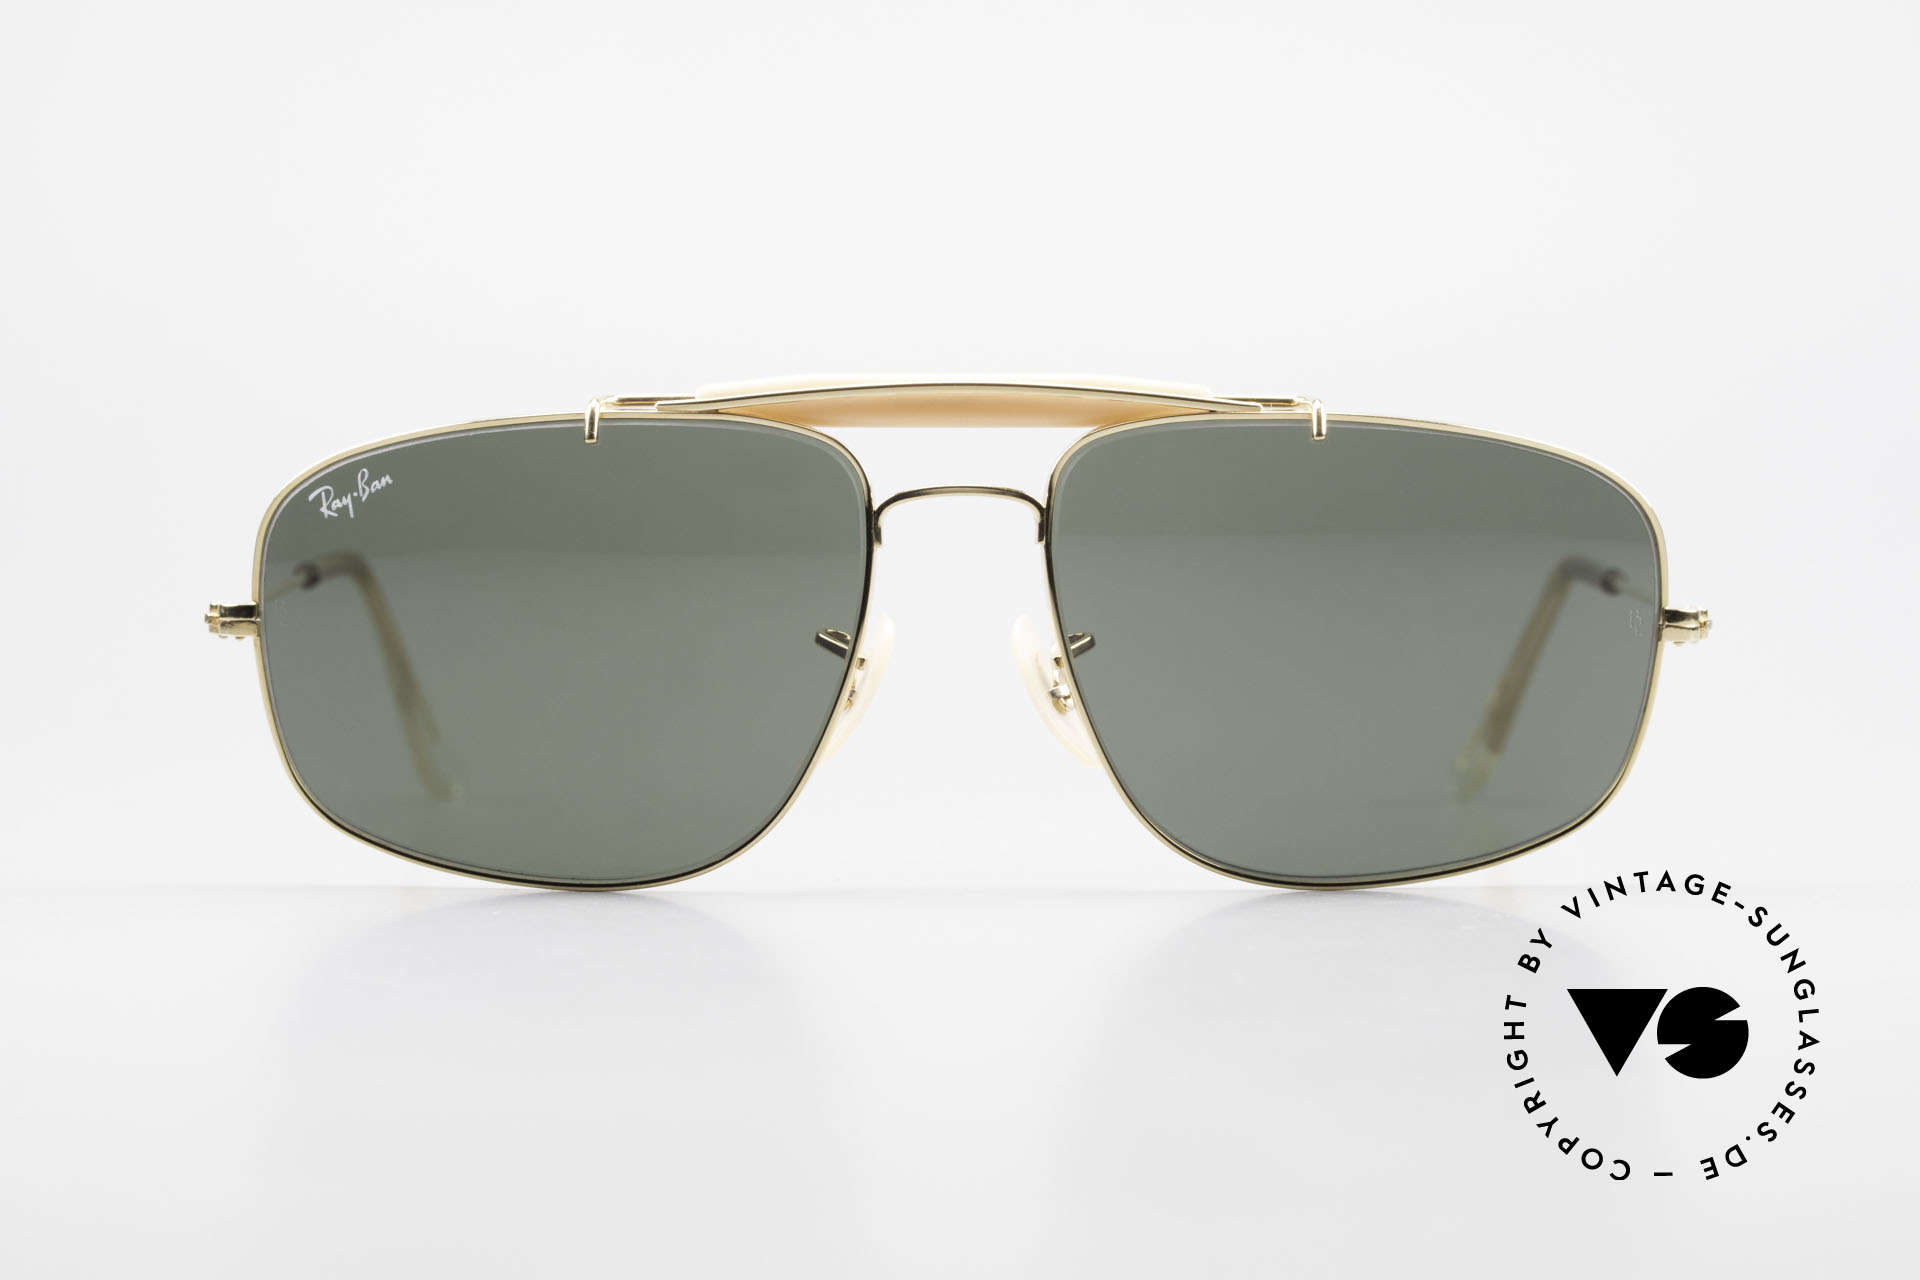 Ray Ban Explorer Browbar Old Ray Ban Made in USA B&L, alternative aviator style with lens size 58mm, Made for Men